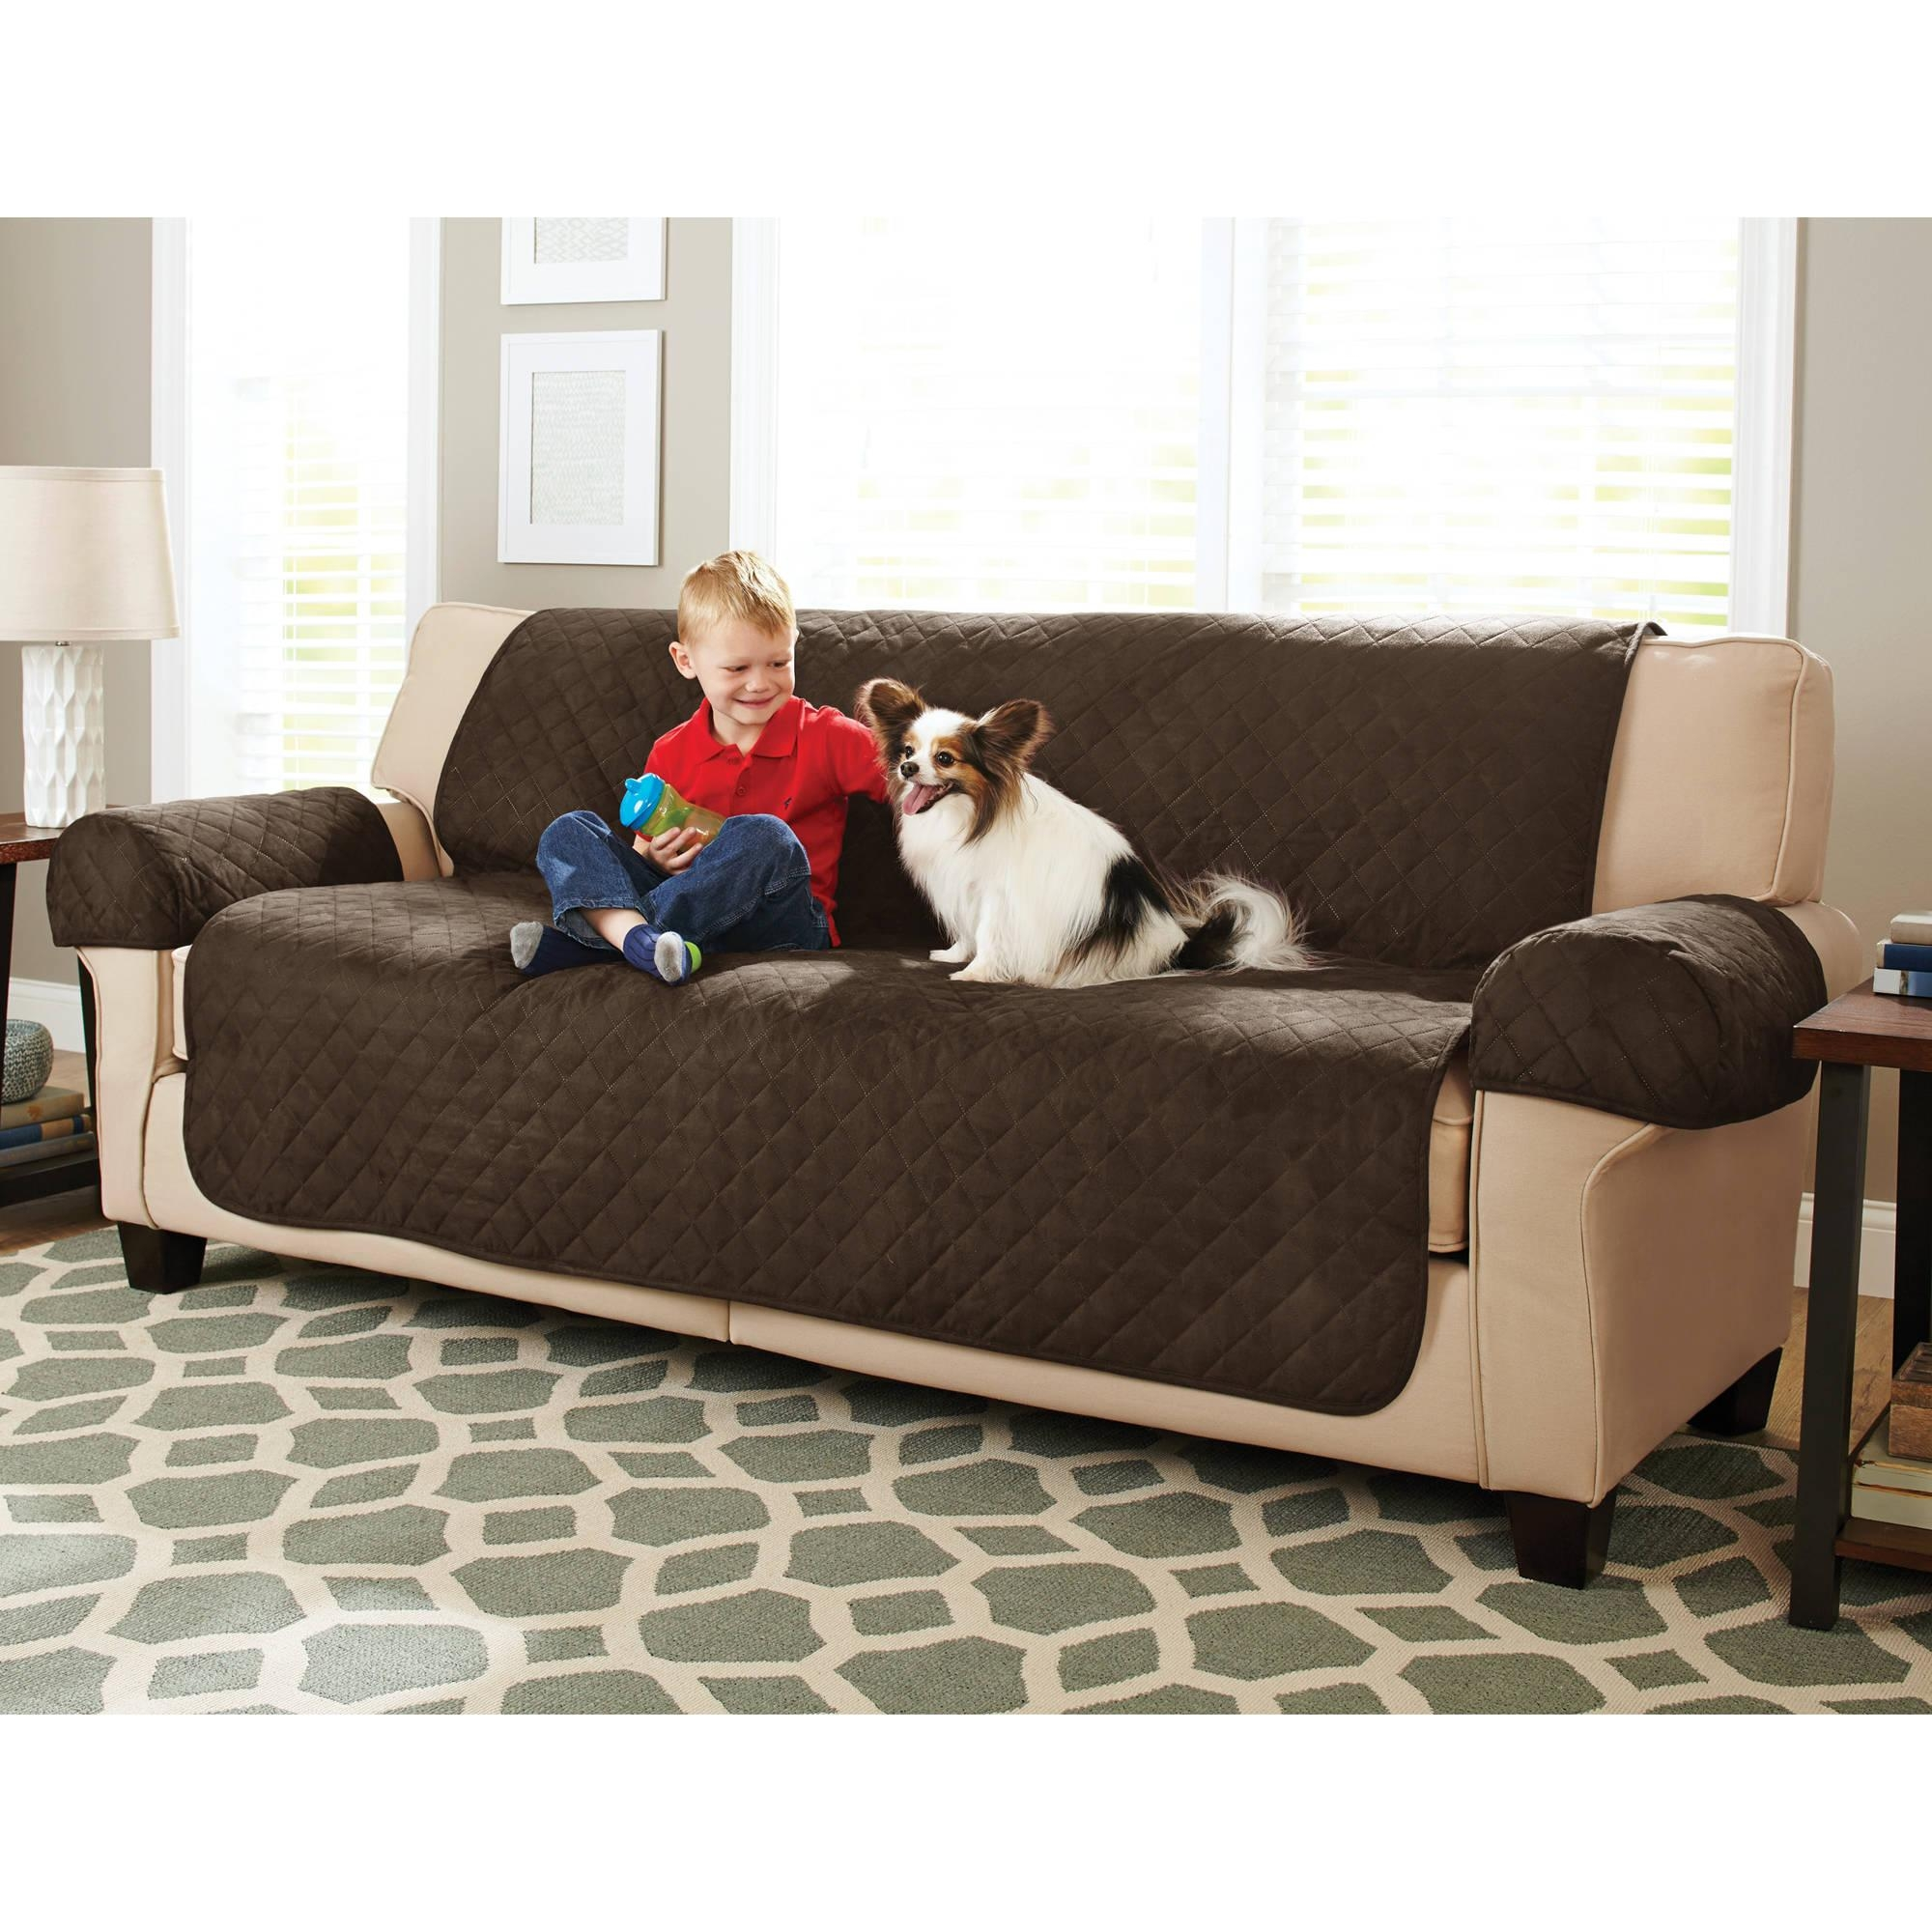 Better Homes And Gardens Waterproof Non Slip Faux Suede Pet With Regard To 3 Piece Slipcover Sets (View 5 of 20)